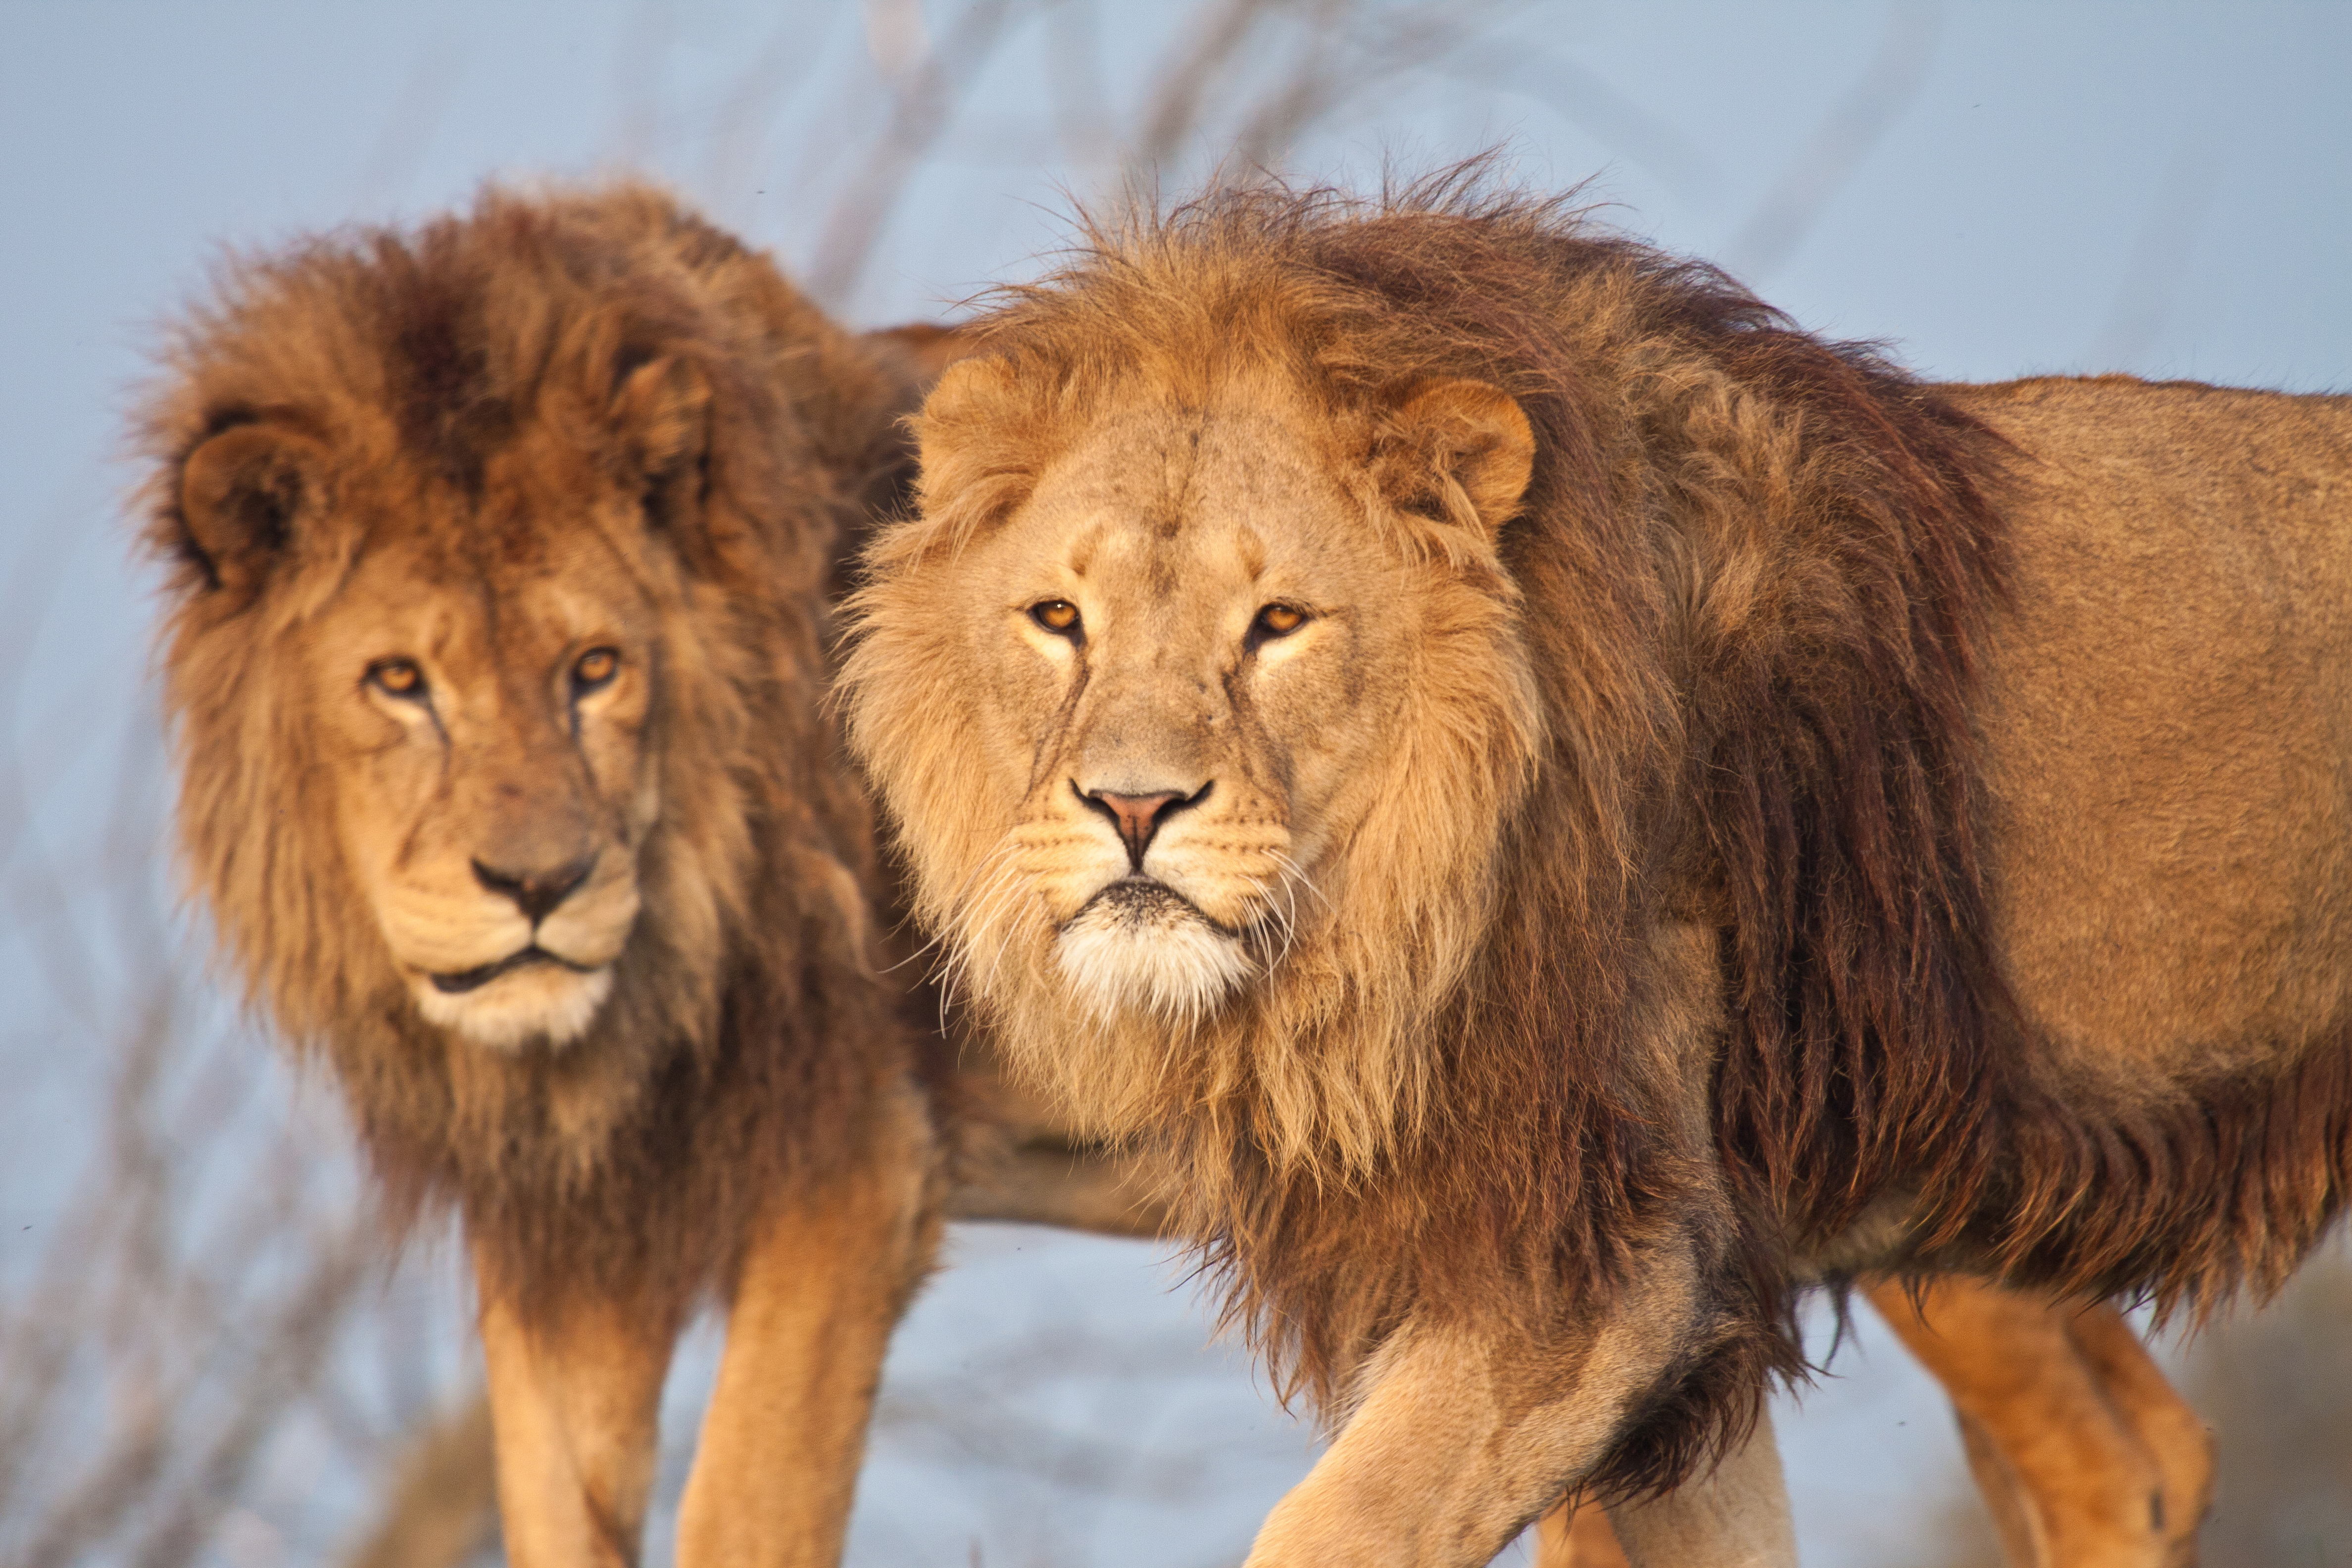 Desktop Wallpapers Lions Big cats 2 animal 4752x3168 lion Two Animals